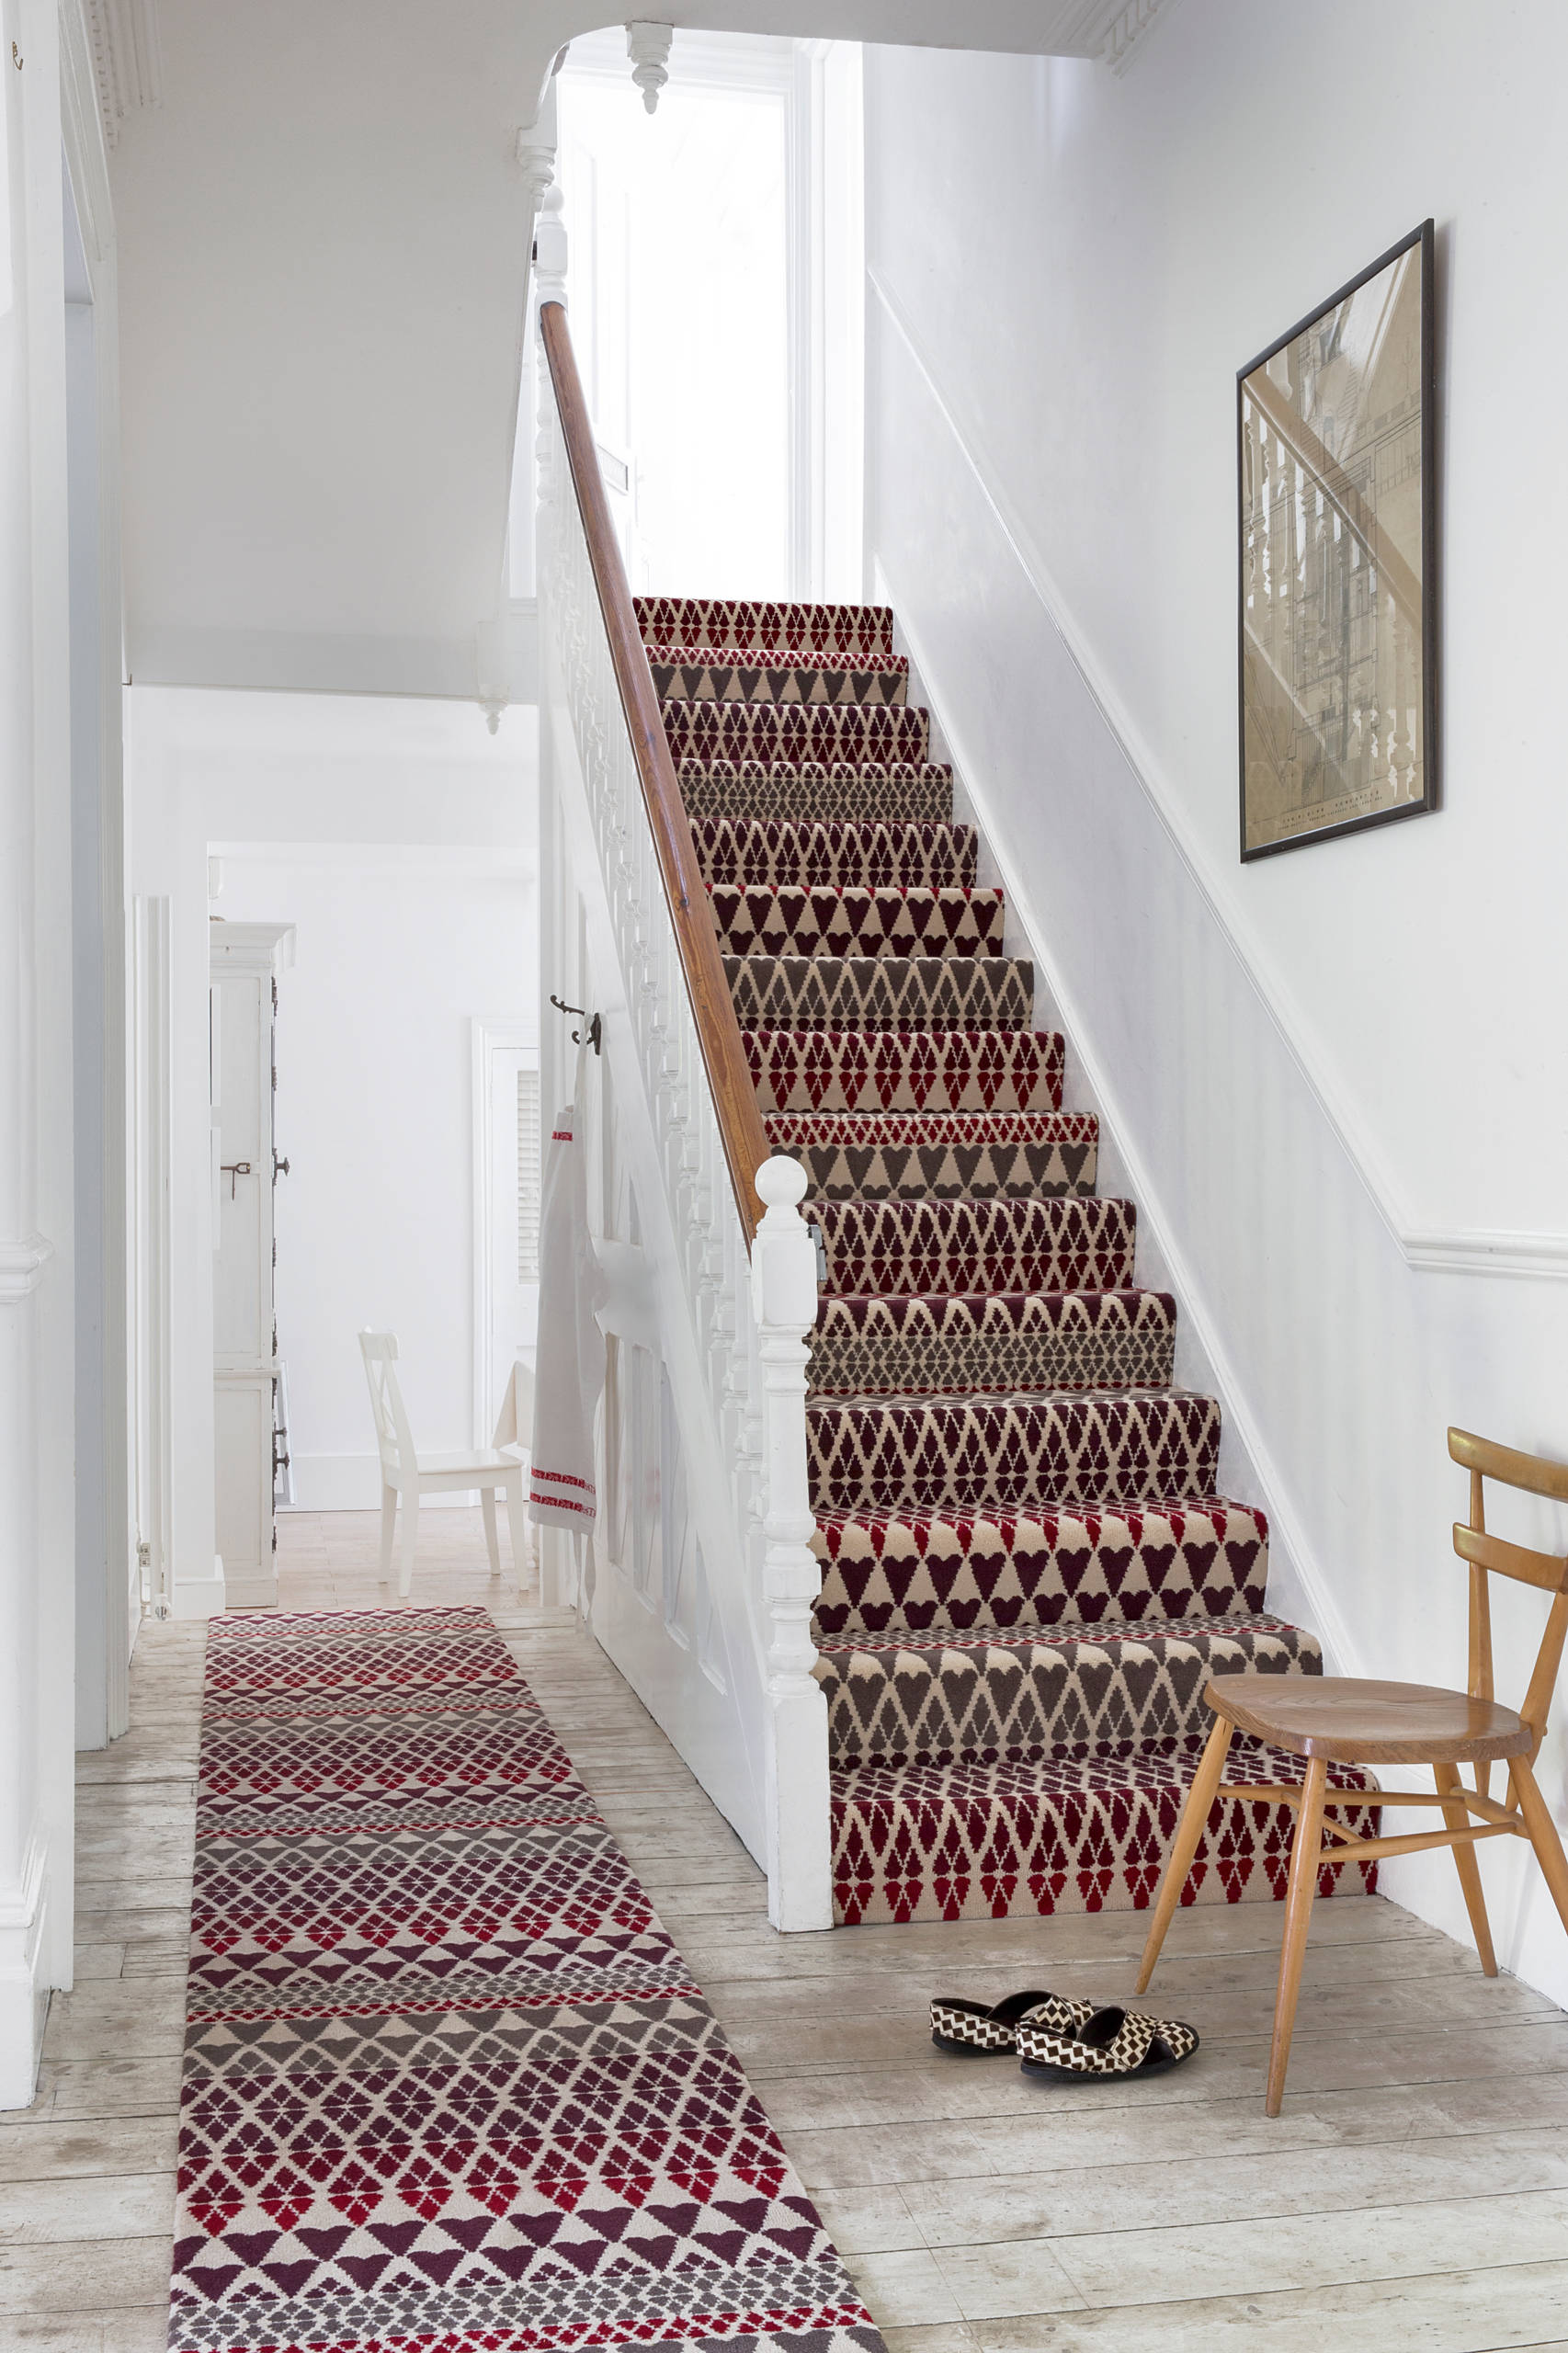 Decorating Traditional Staircase In Hallway With Patterned Carpet